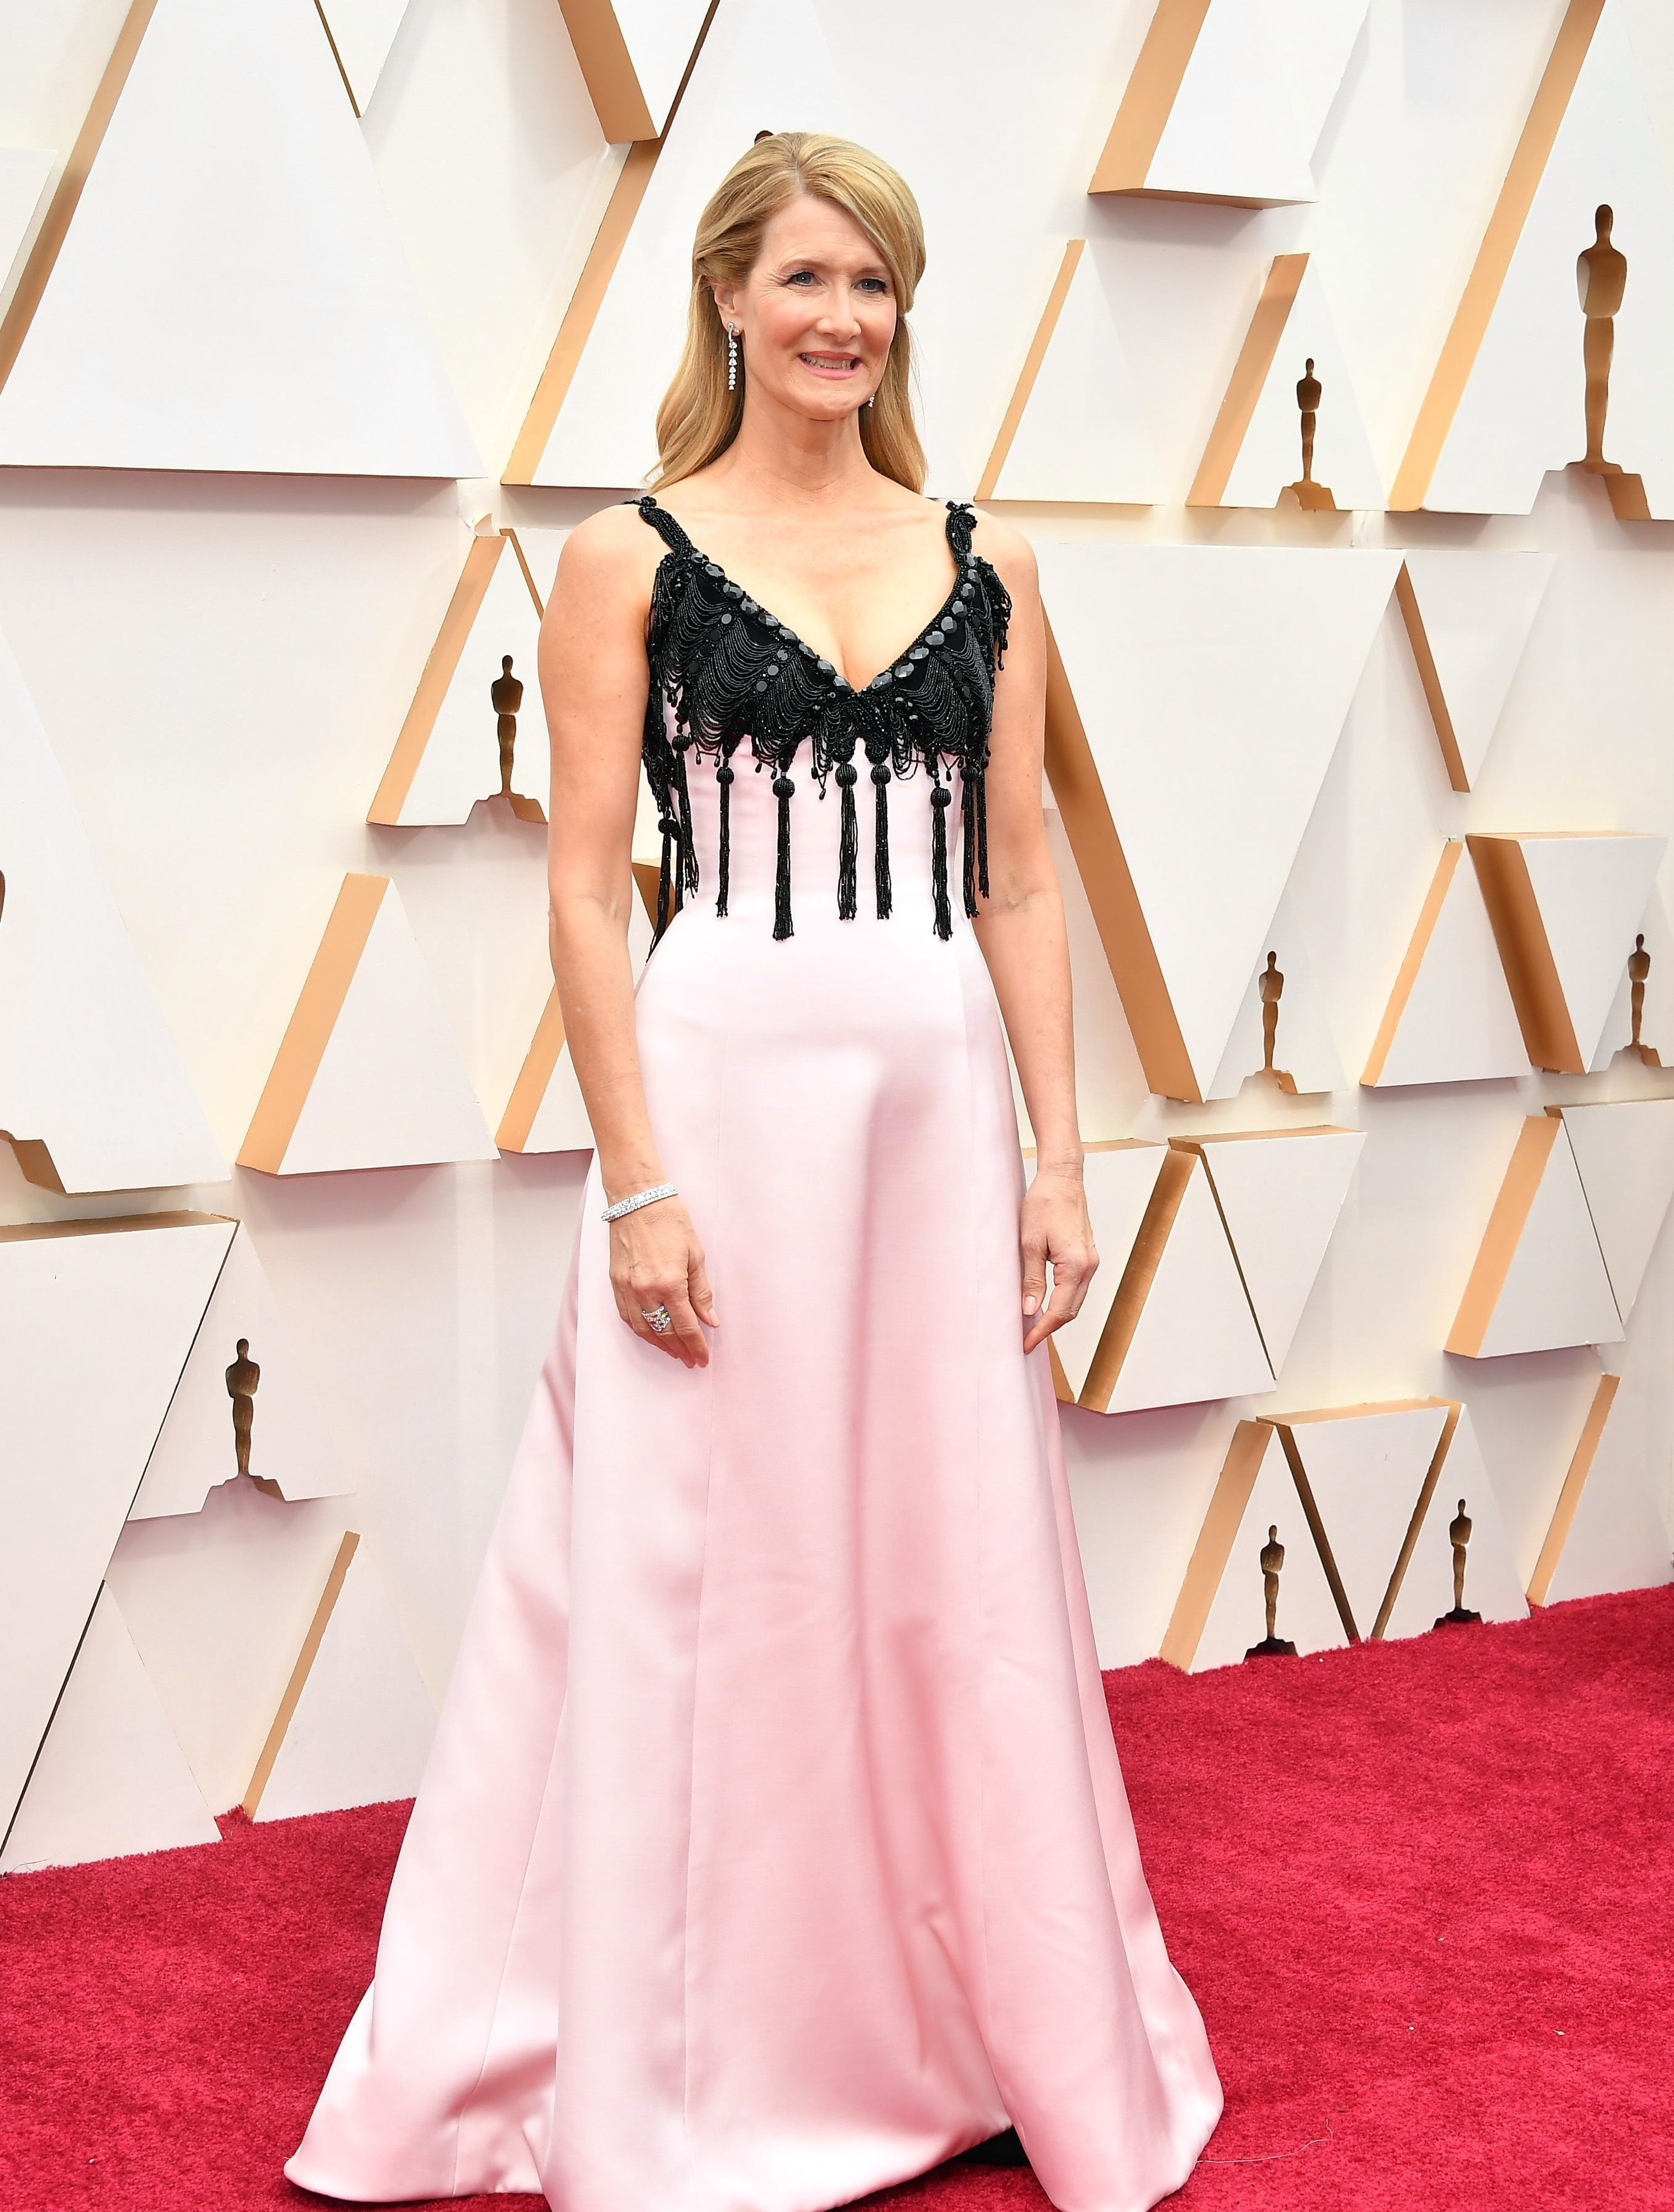 HOLLYWOOD, CALIFORNIA - FEBRUARY 09: Laura Dern attends the 92nd Annual Academy Awards at Hollywood and Highland on February 09, 2020 in Hollywood, California. (Photo by Amy Sussman/Getty Images)